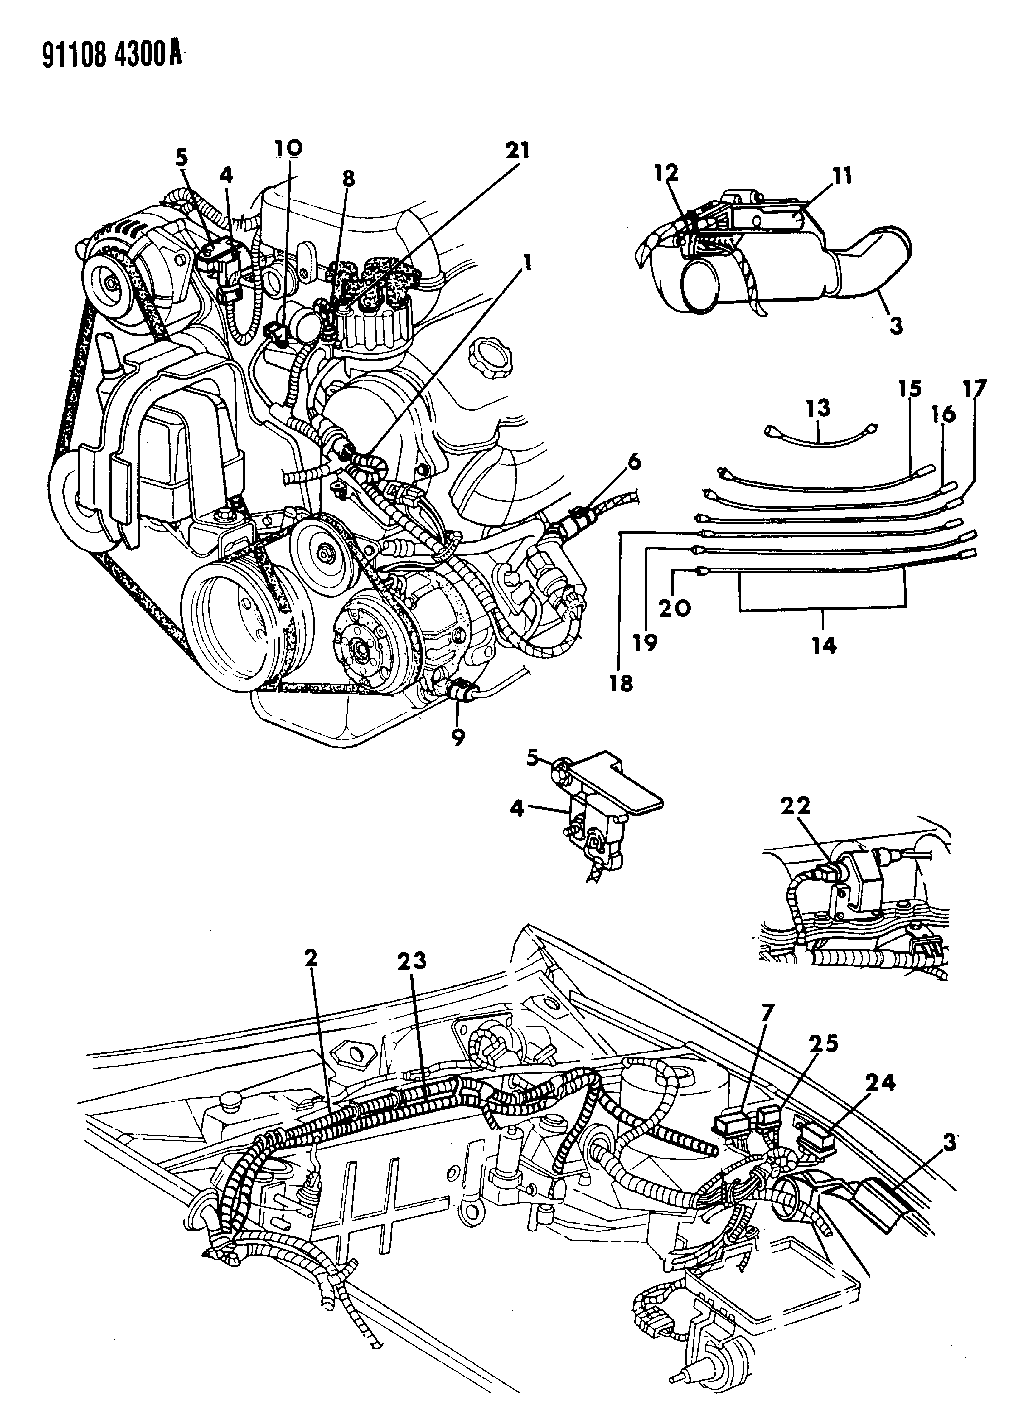 1991 Chrysler Tc Maserati Wiring Engine Front End Related Parts Tail Light Diagram